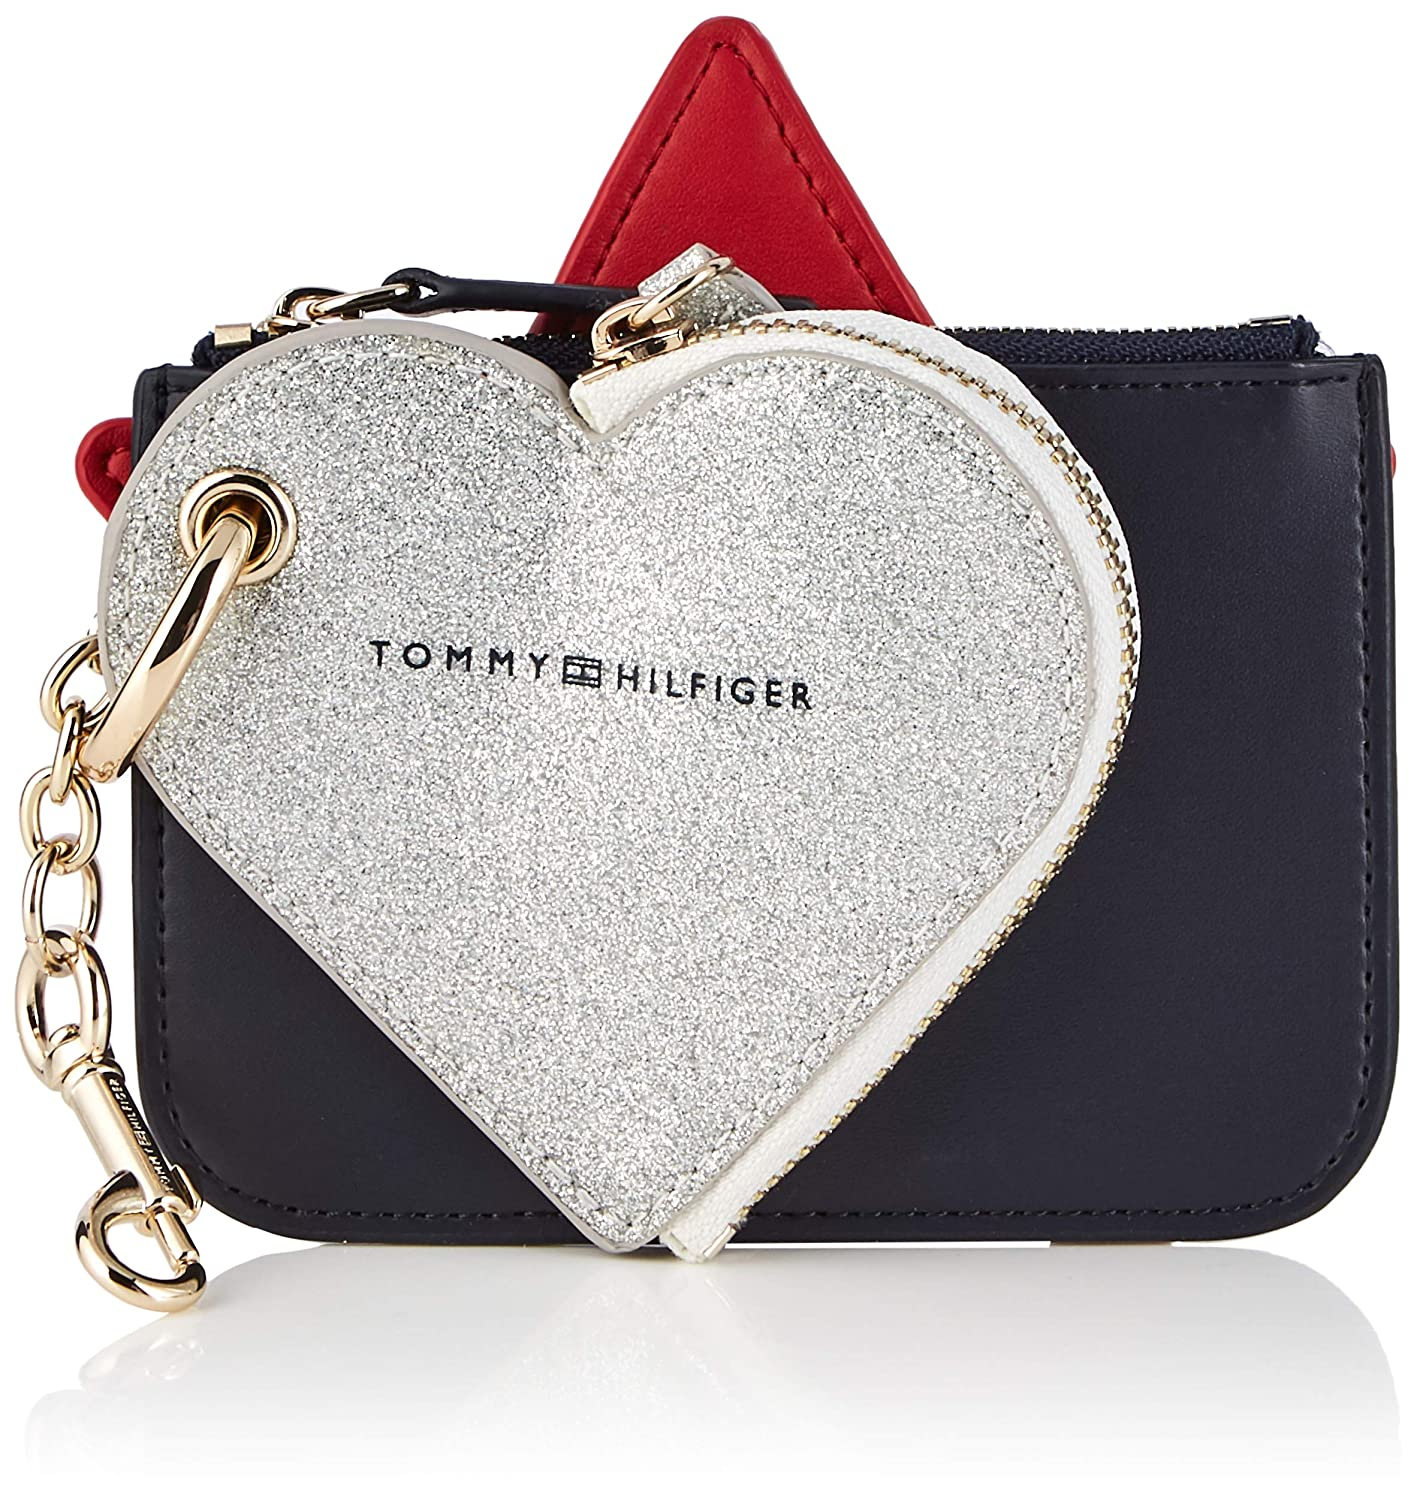 Tommy Hilfiger - Gifting 3 In 1 Charm, Llaveros Mujer, Azul ...